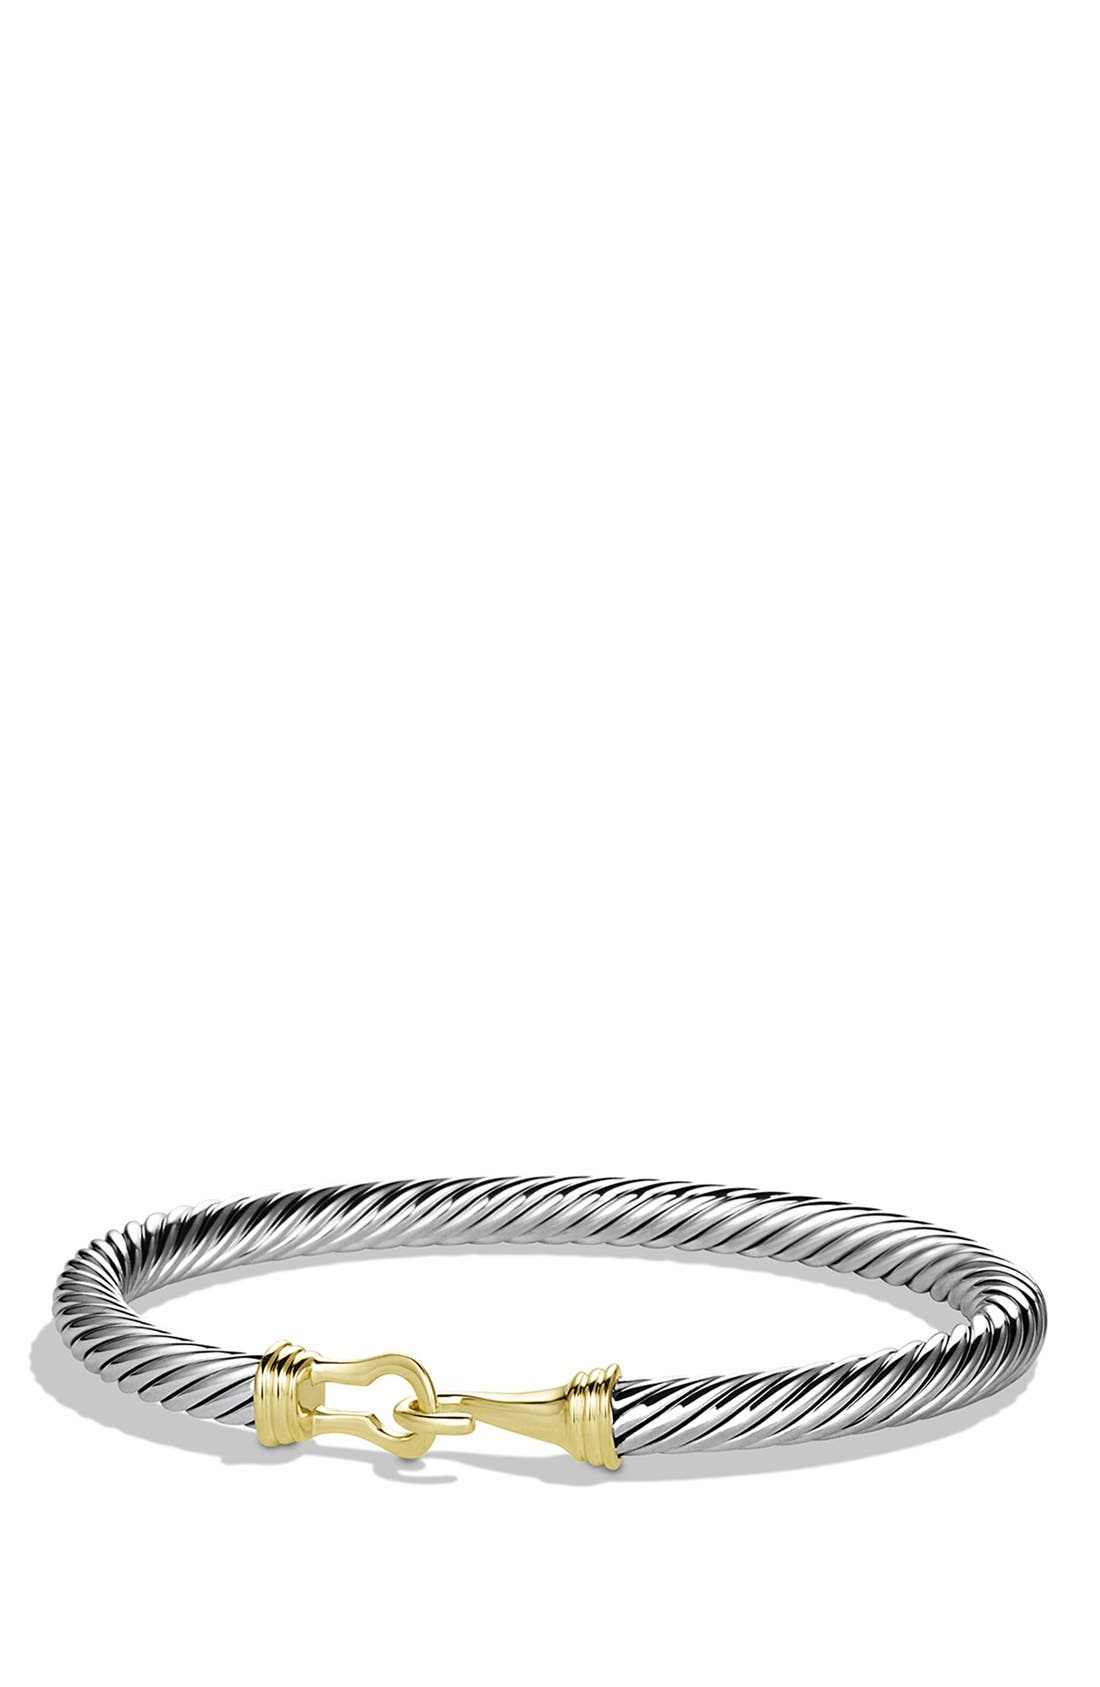 Alternate Image 1 Selected - David Yurman 'Cable Buckle' Bracelet with Gold